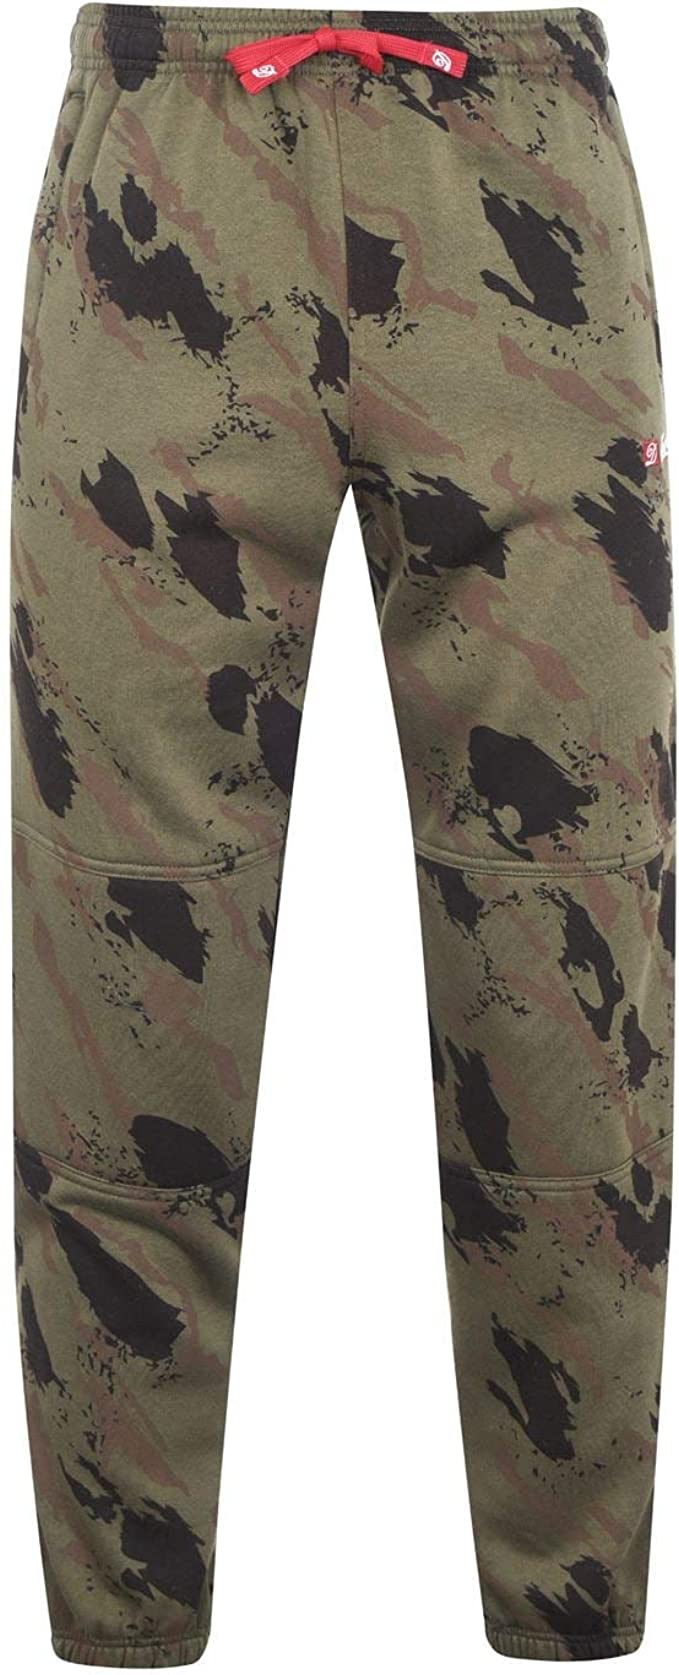 Diem Mens All Terrain Joggers Fishing Trousers Bottoms Pants Clothing Wear